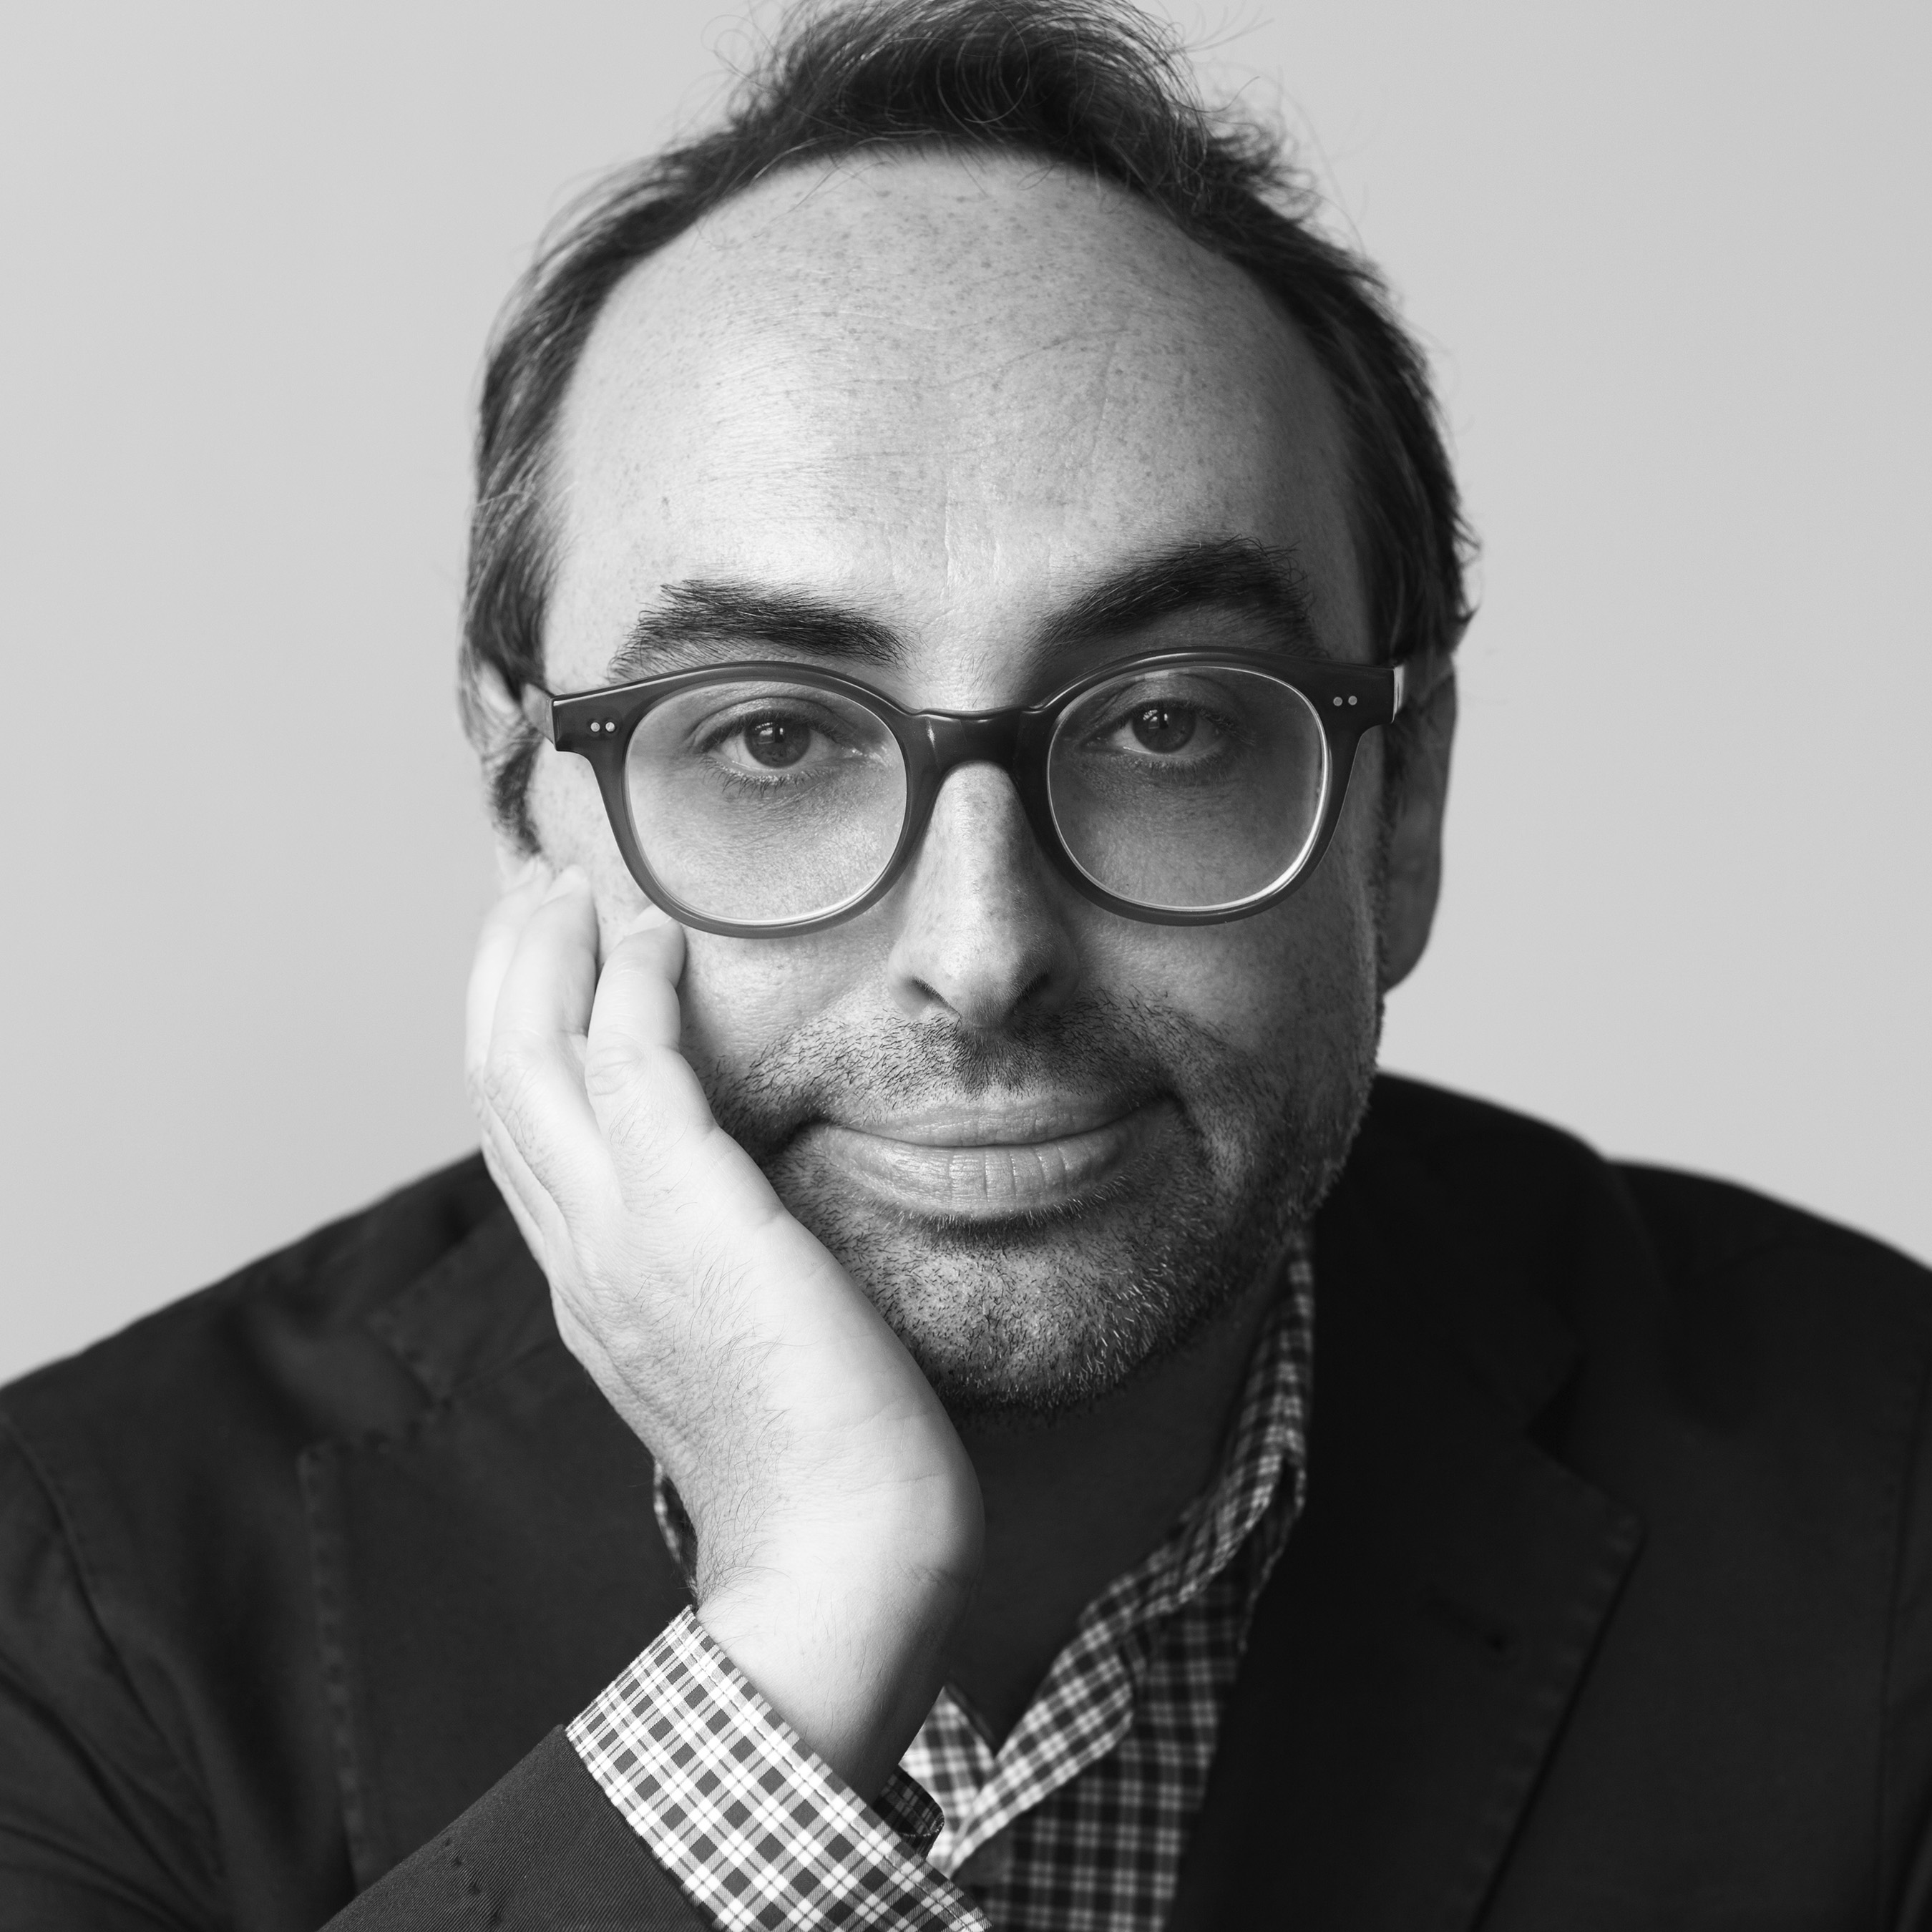 Photo of Gary Shteyngart by Brigitte Lacombe.